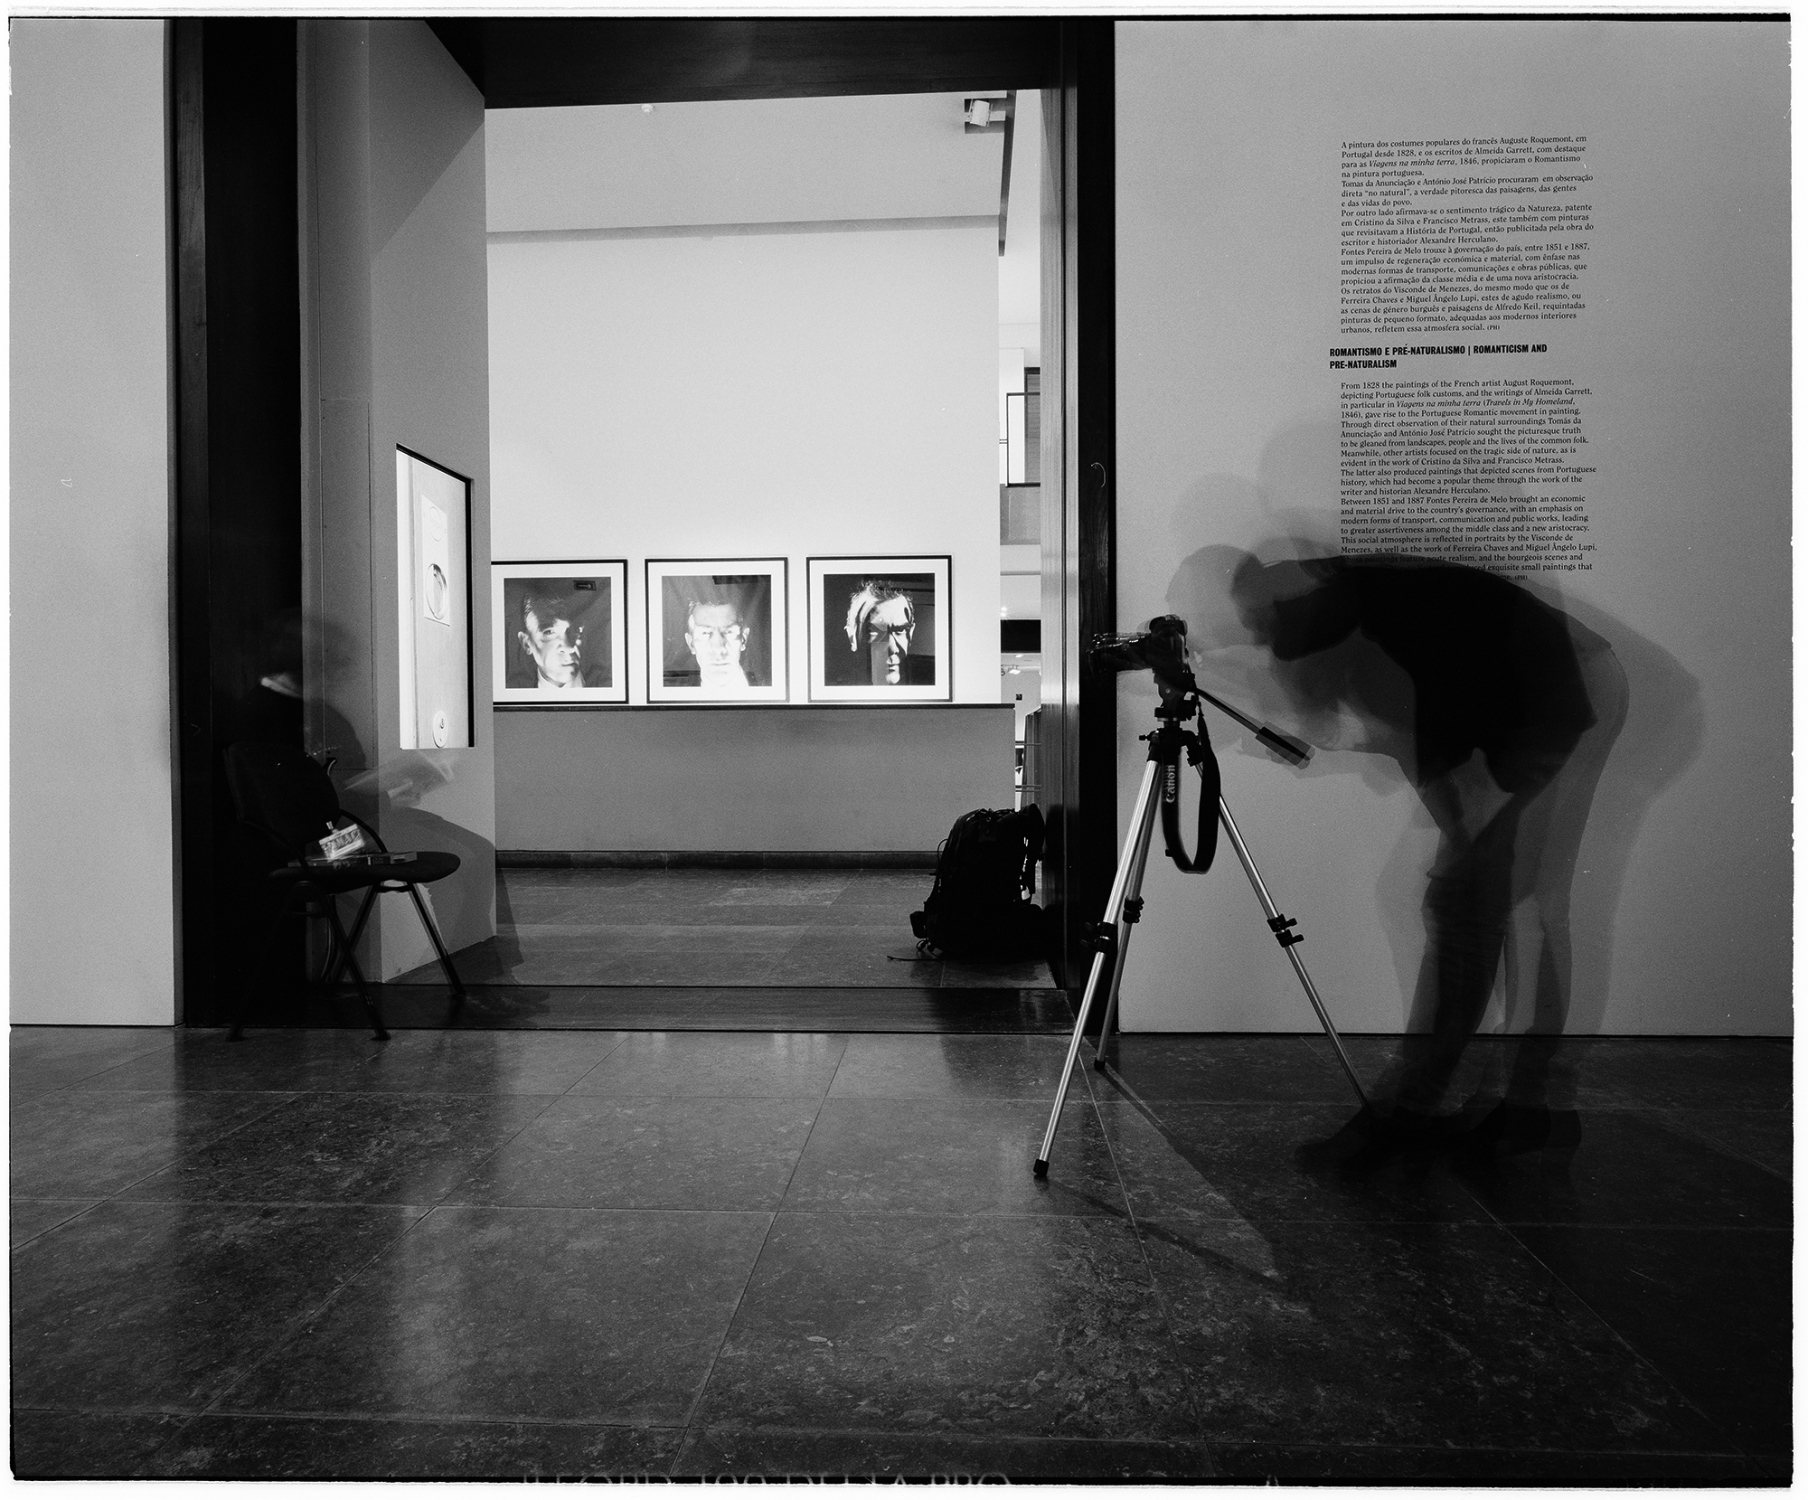 Tatiana Macedo filming in the Chiado Museum, Lisbon, Portugal. In 2014. This image was made with black and white  film and Mamyia 7II camera, in 6x7 format. This numbered copied was processed in Ilford FB glossy paper, 50x60cm.